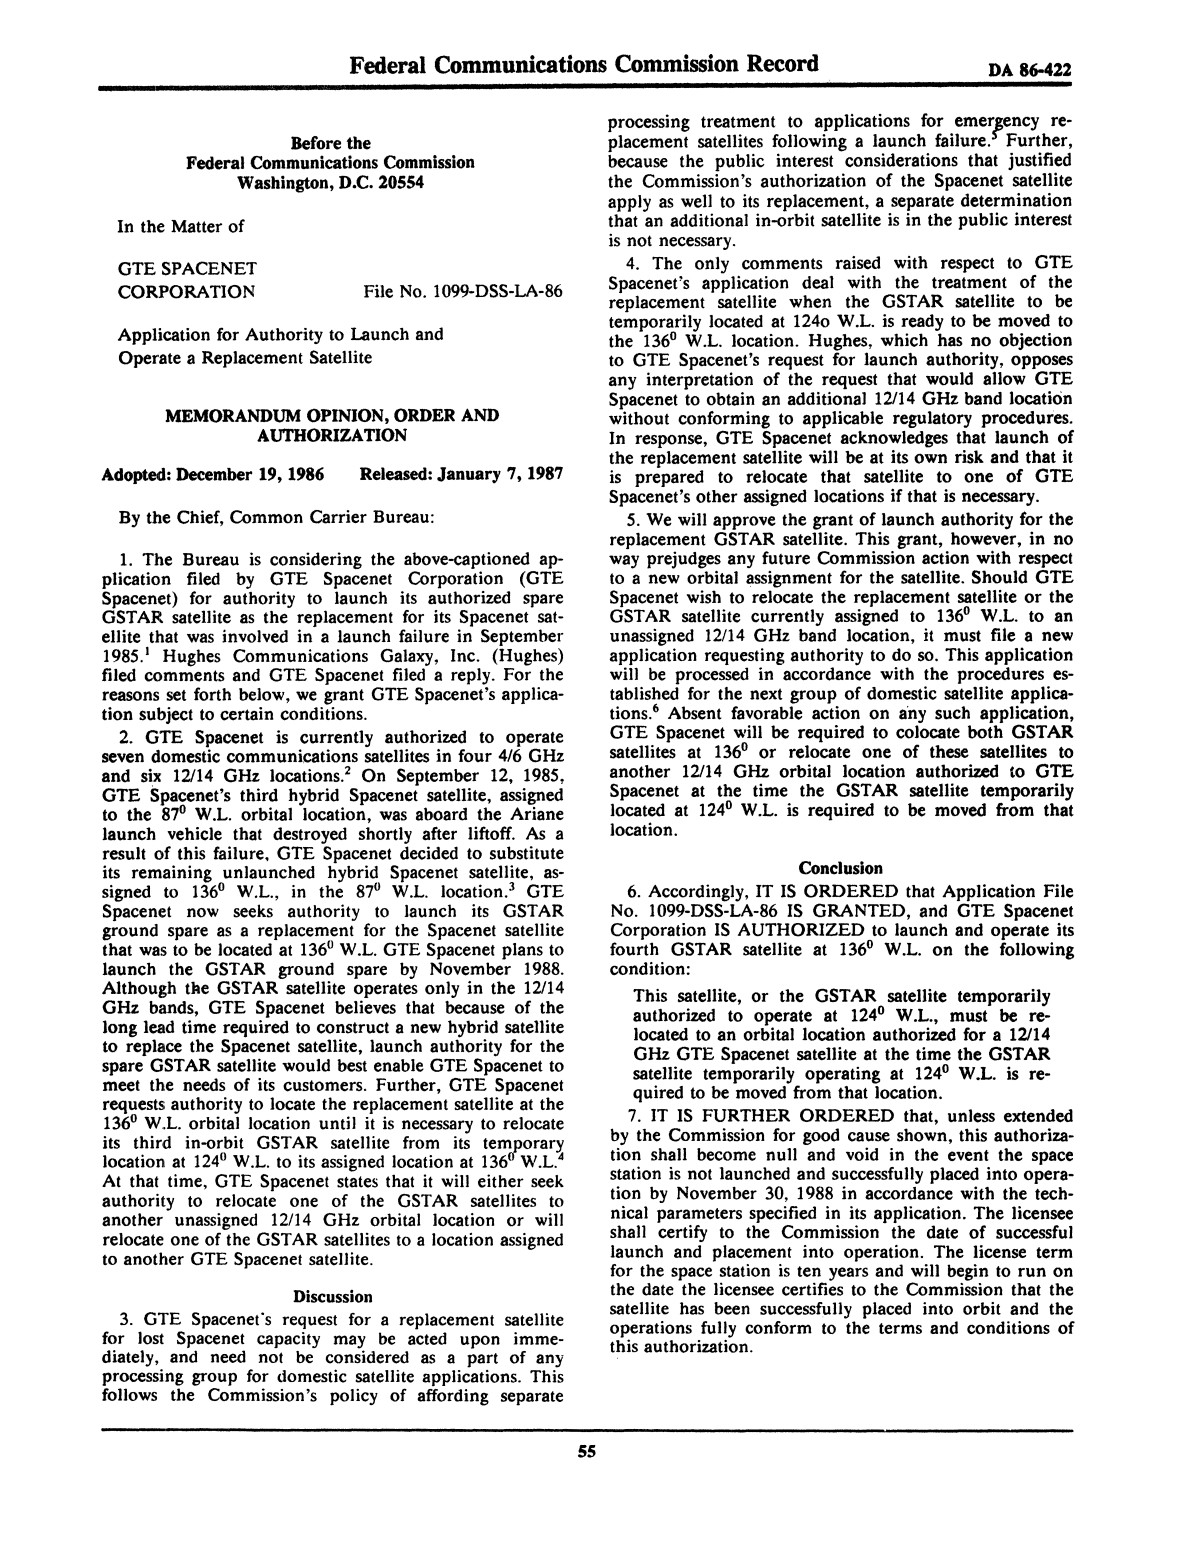 FCC Record, Volume 2, No. 1, Pages 1 to 409, January 5 - January 16, 1987                                                                                                      55